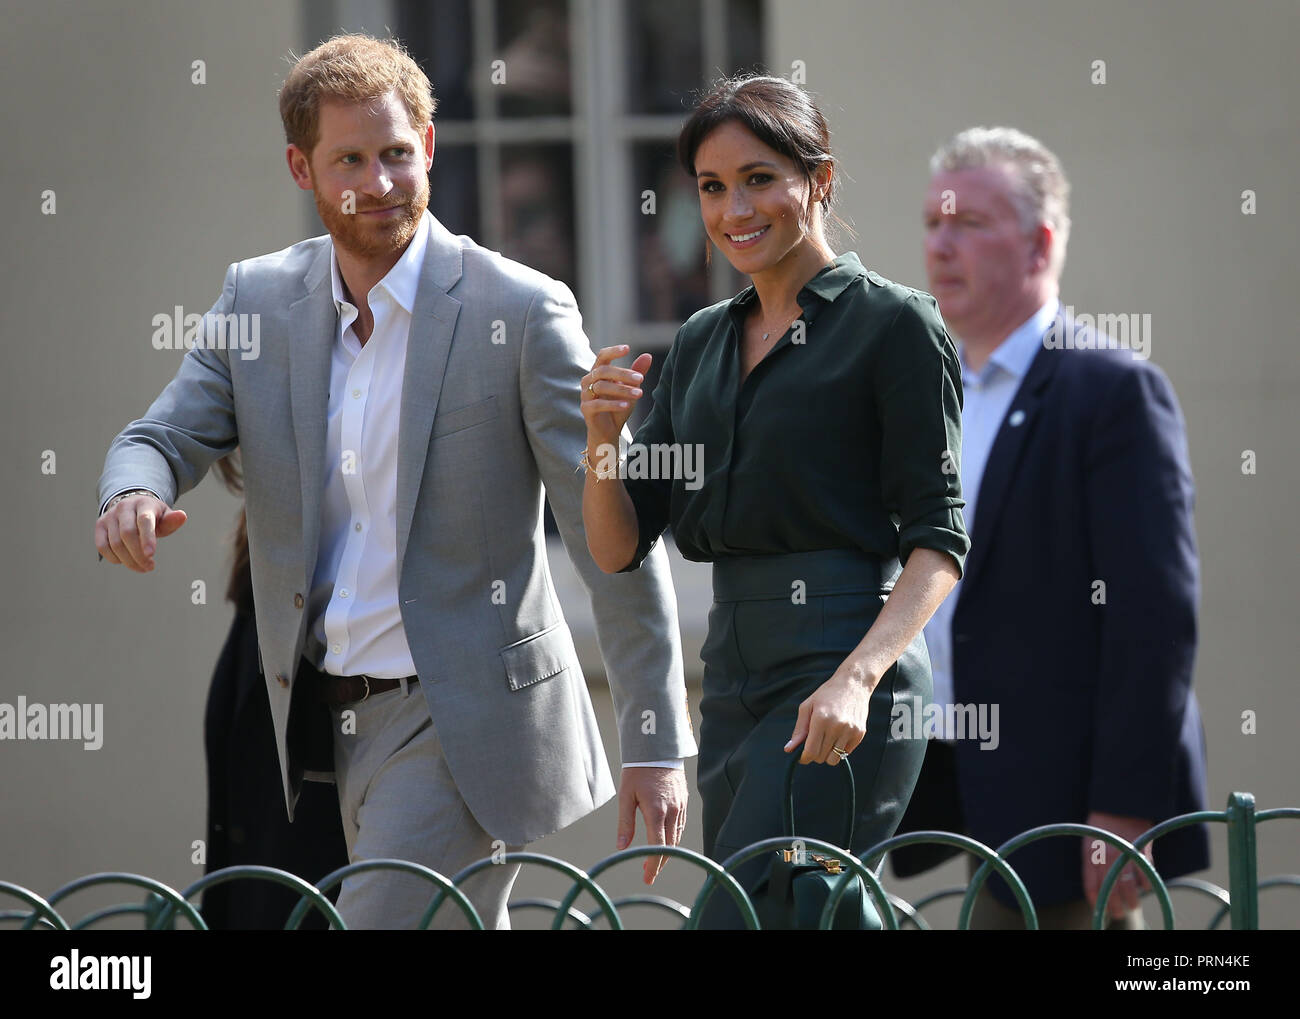 Brighton, UK, 3rd October 2018. The Duke and Duchess of Sussex visit the Royal Pavilion in Brighton :Credit James Boardman/Alamy Live News Stock Photo